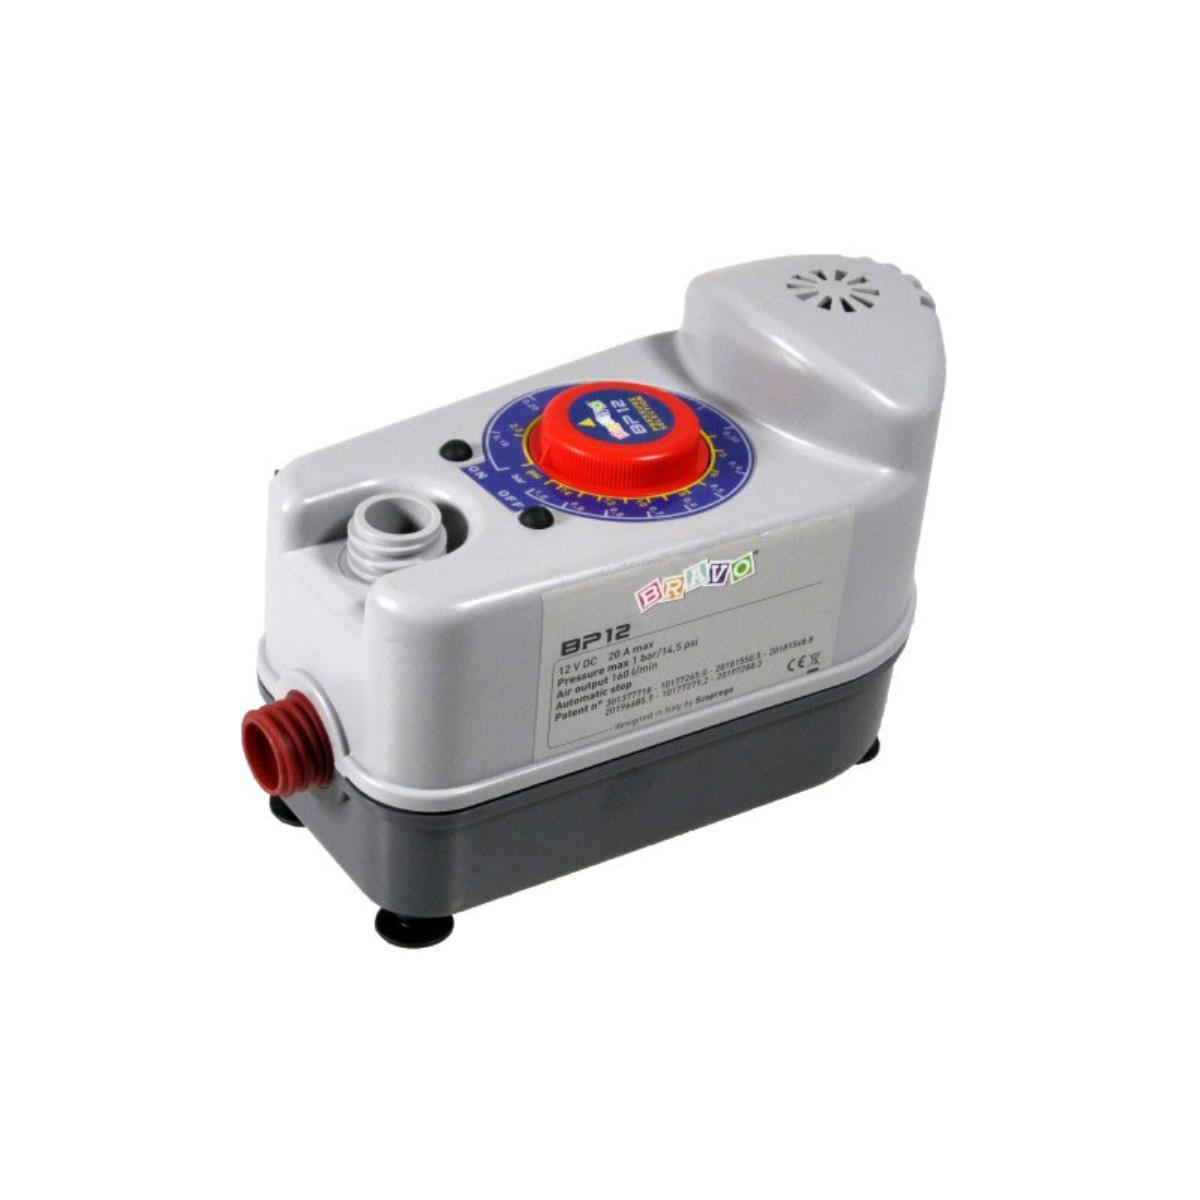 Electric Pump Bravo Bp12 (6791120)